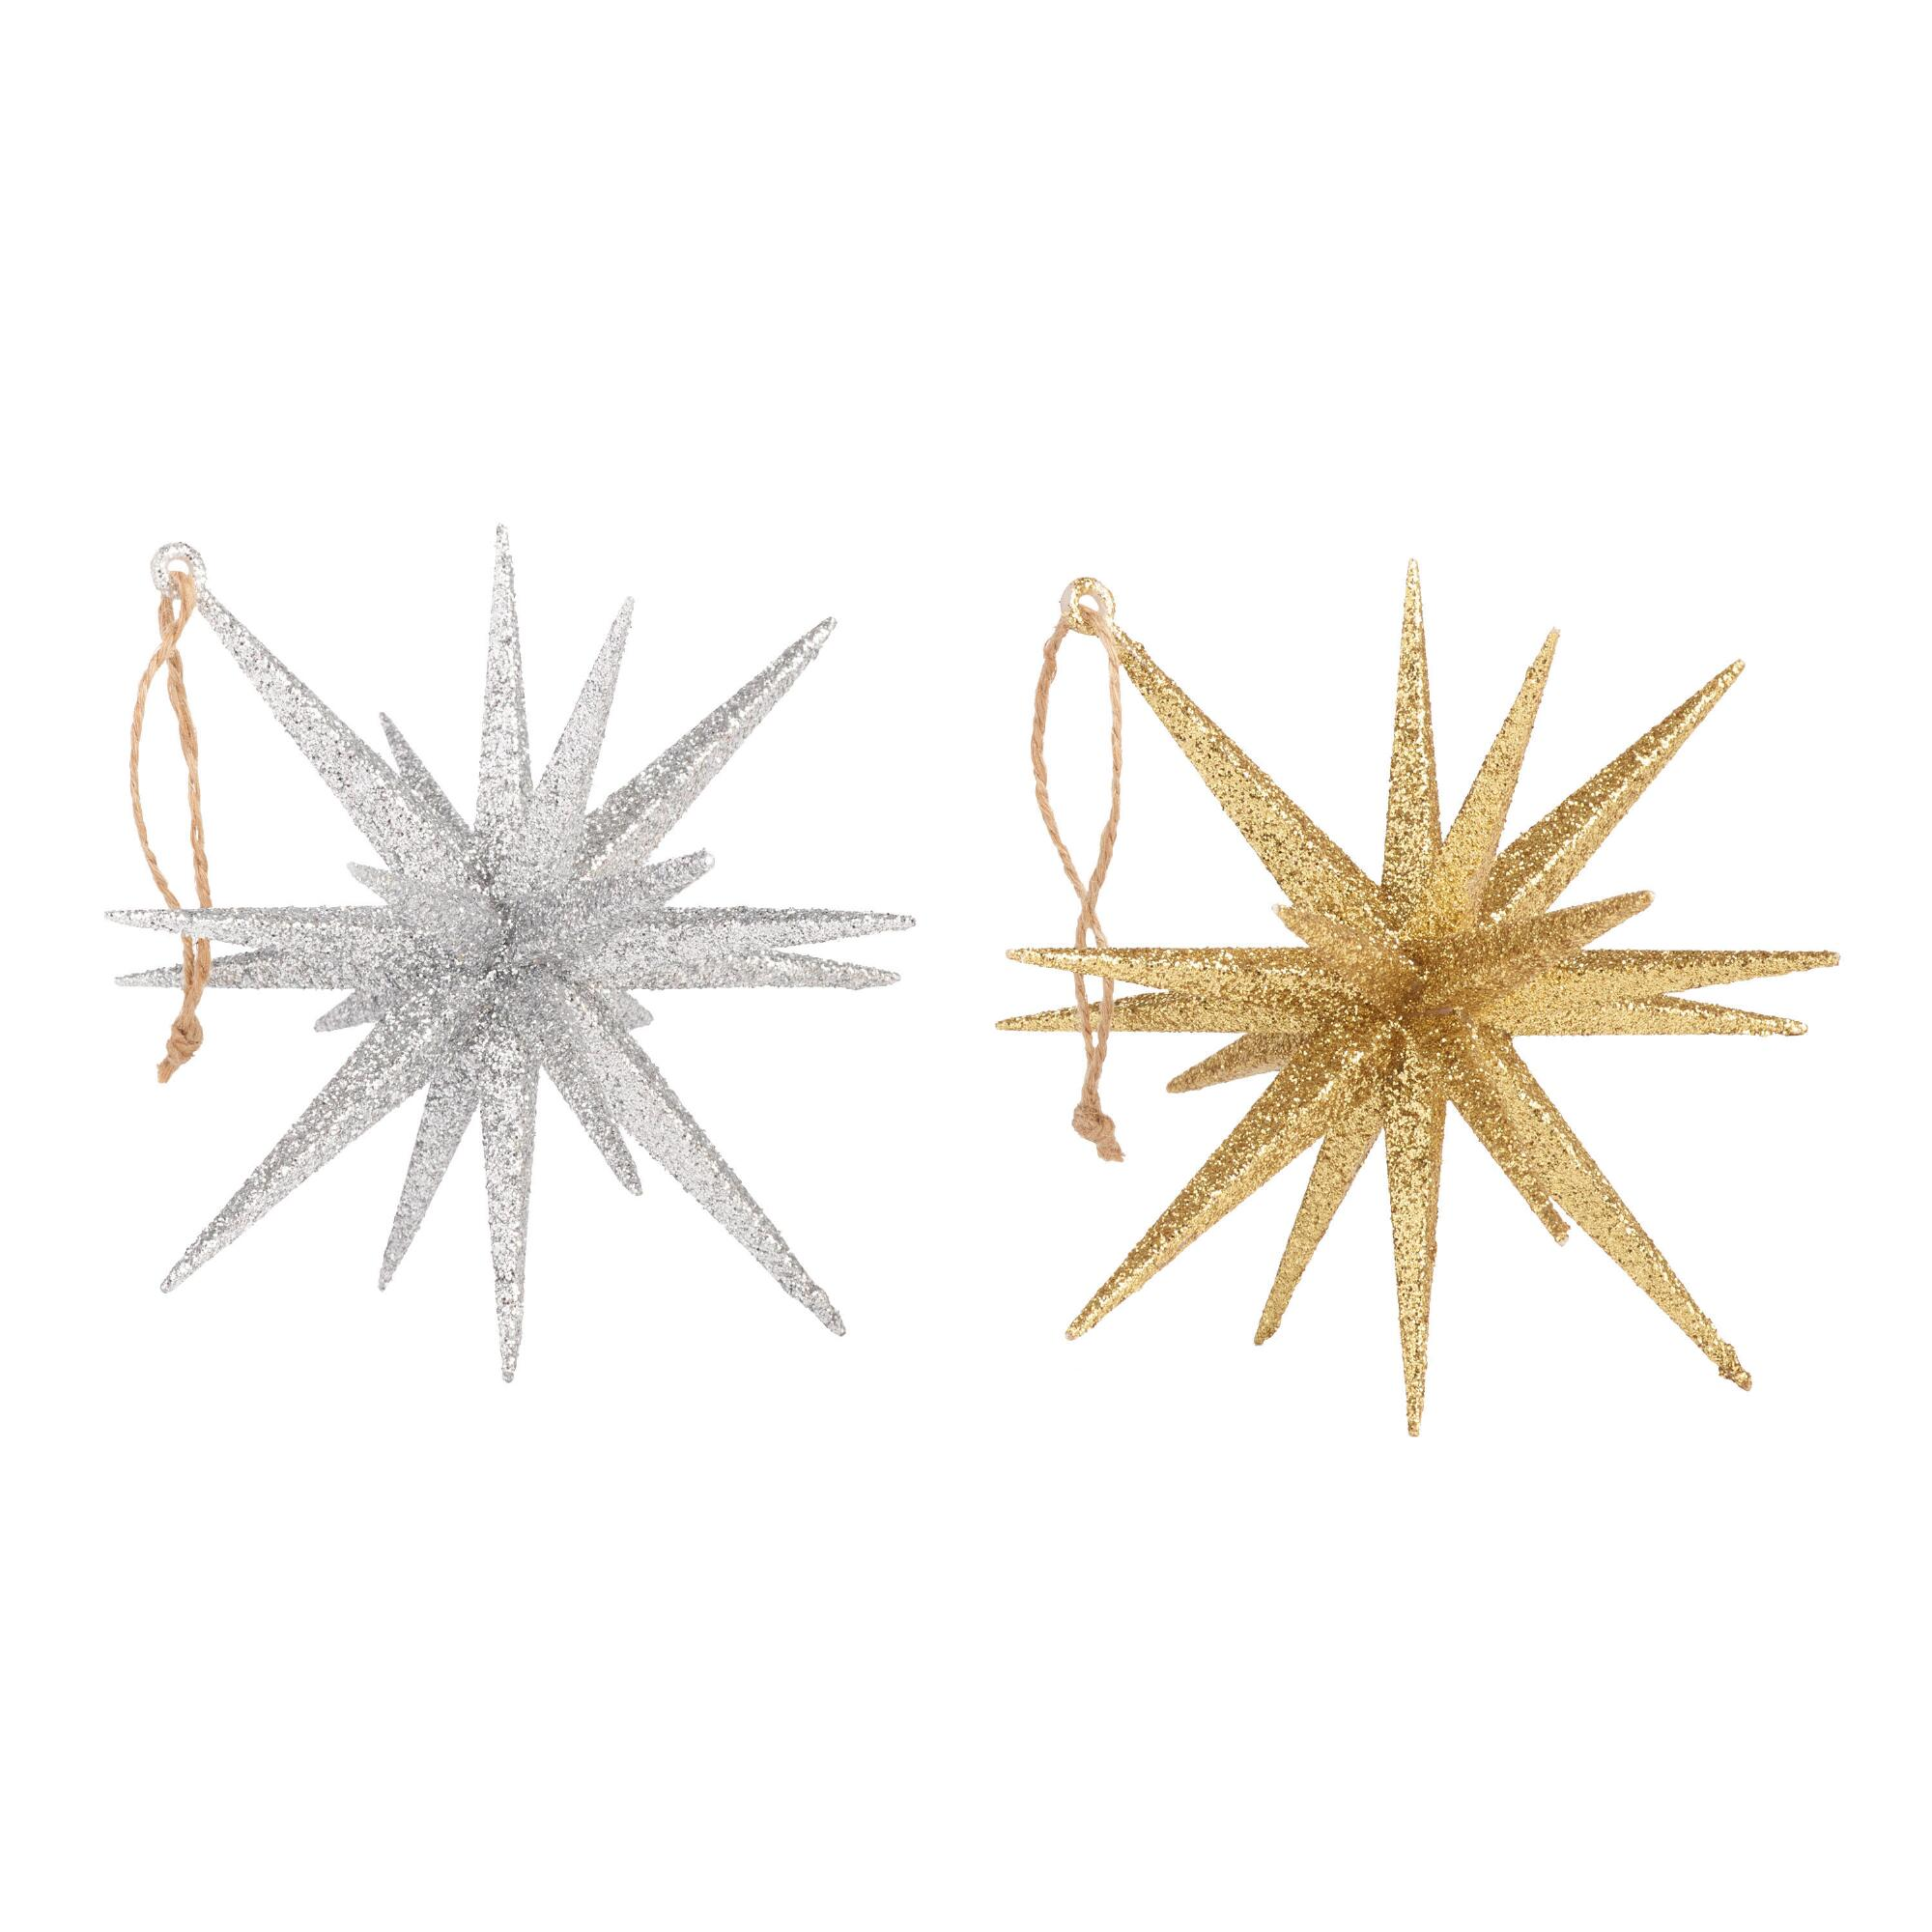 World Market Glittered Silver And Gold 18 Point Star Ornaments Set of 2